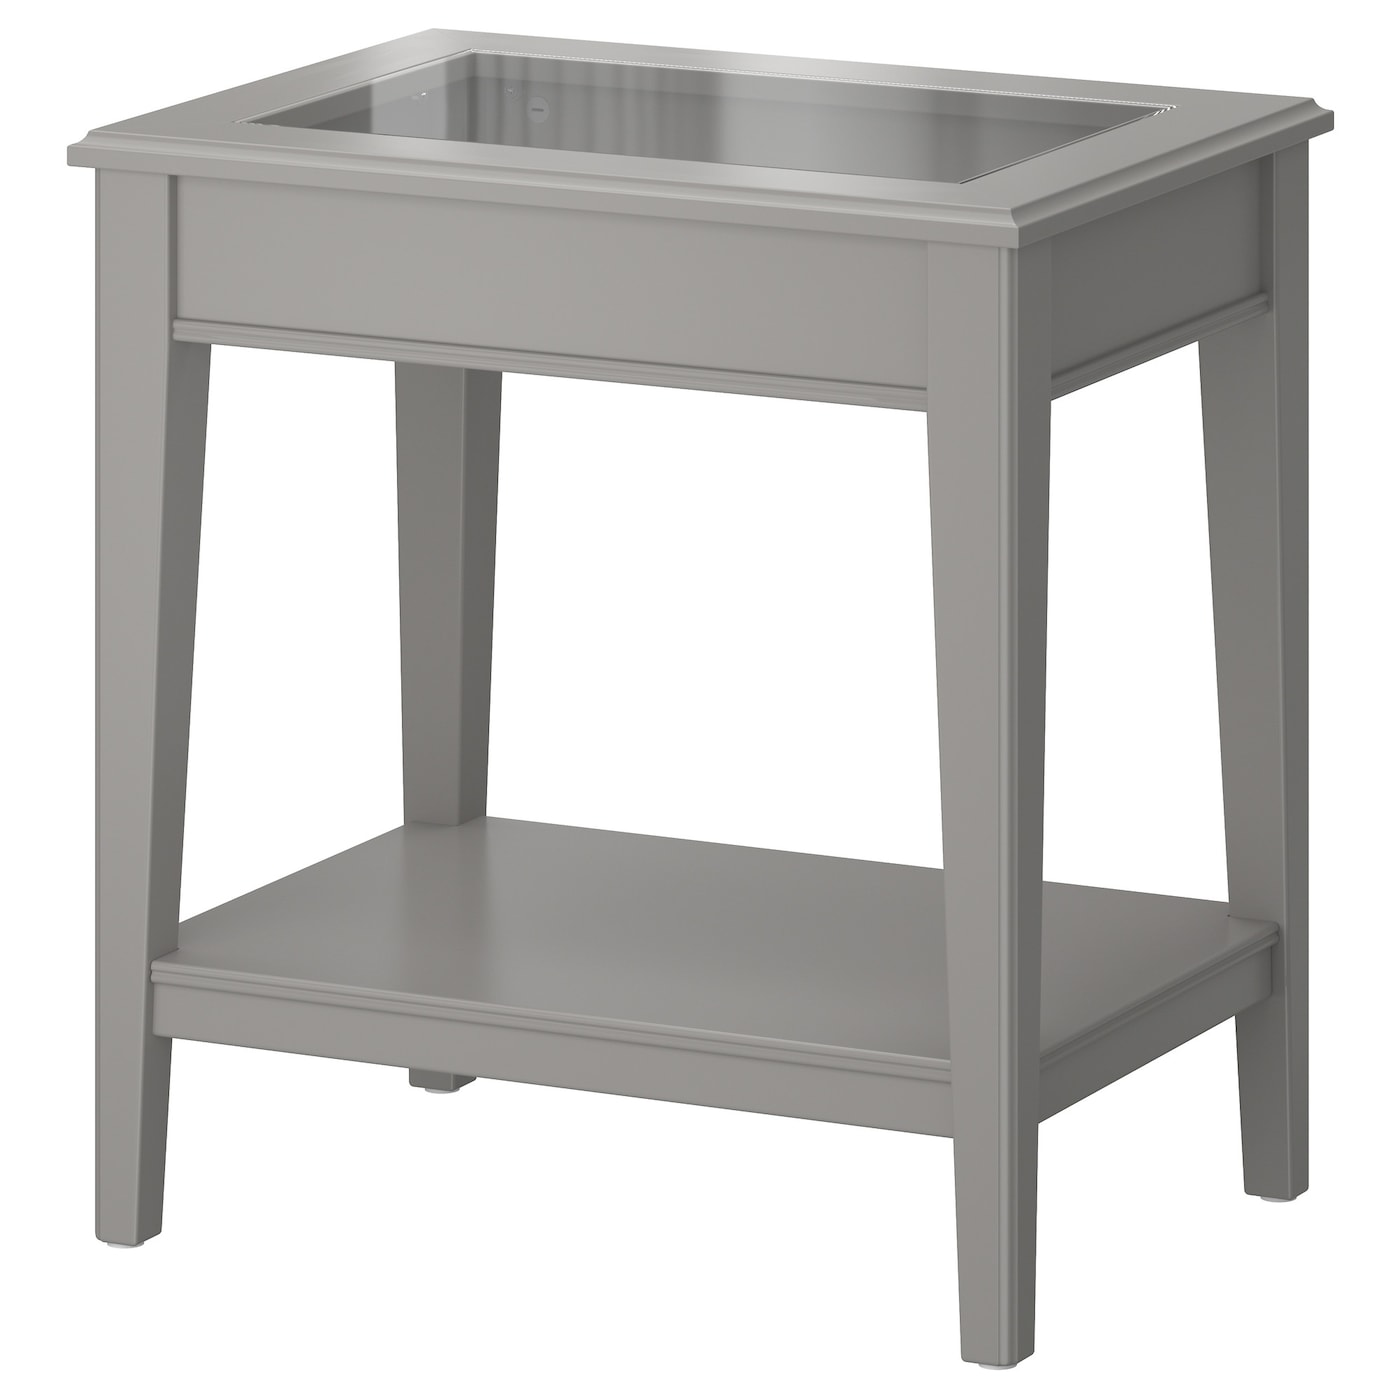 liatorp side table grey glass 57x40 cm ikea. Black Bedroom Furniture Sets. Home Design Ideas